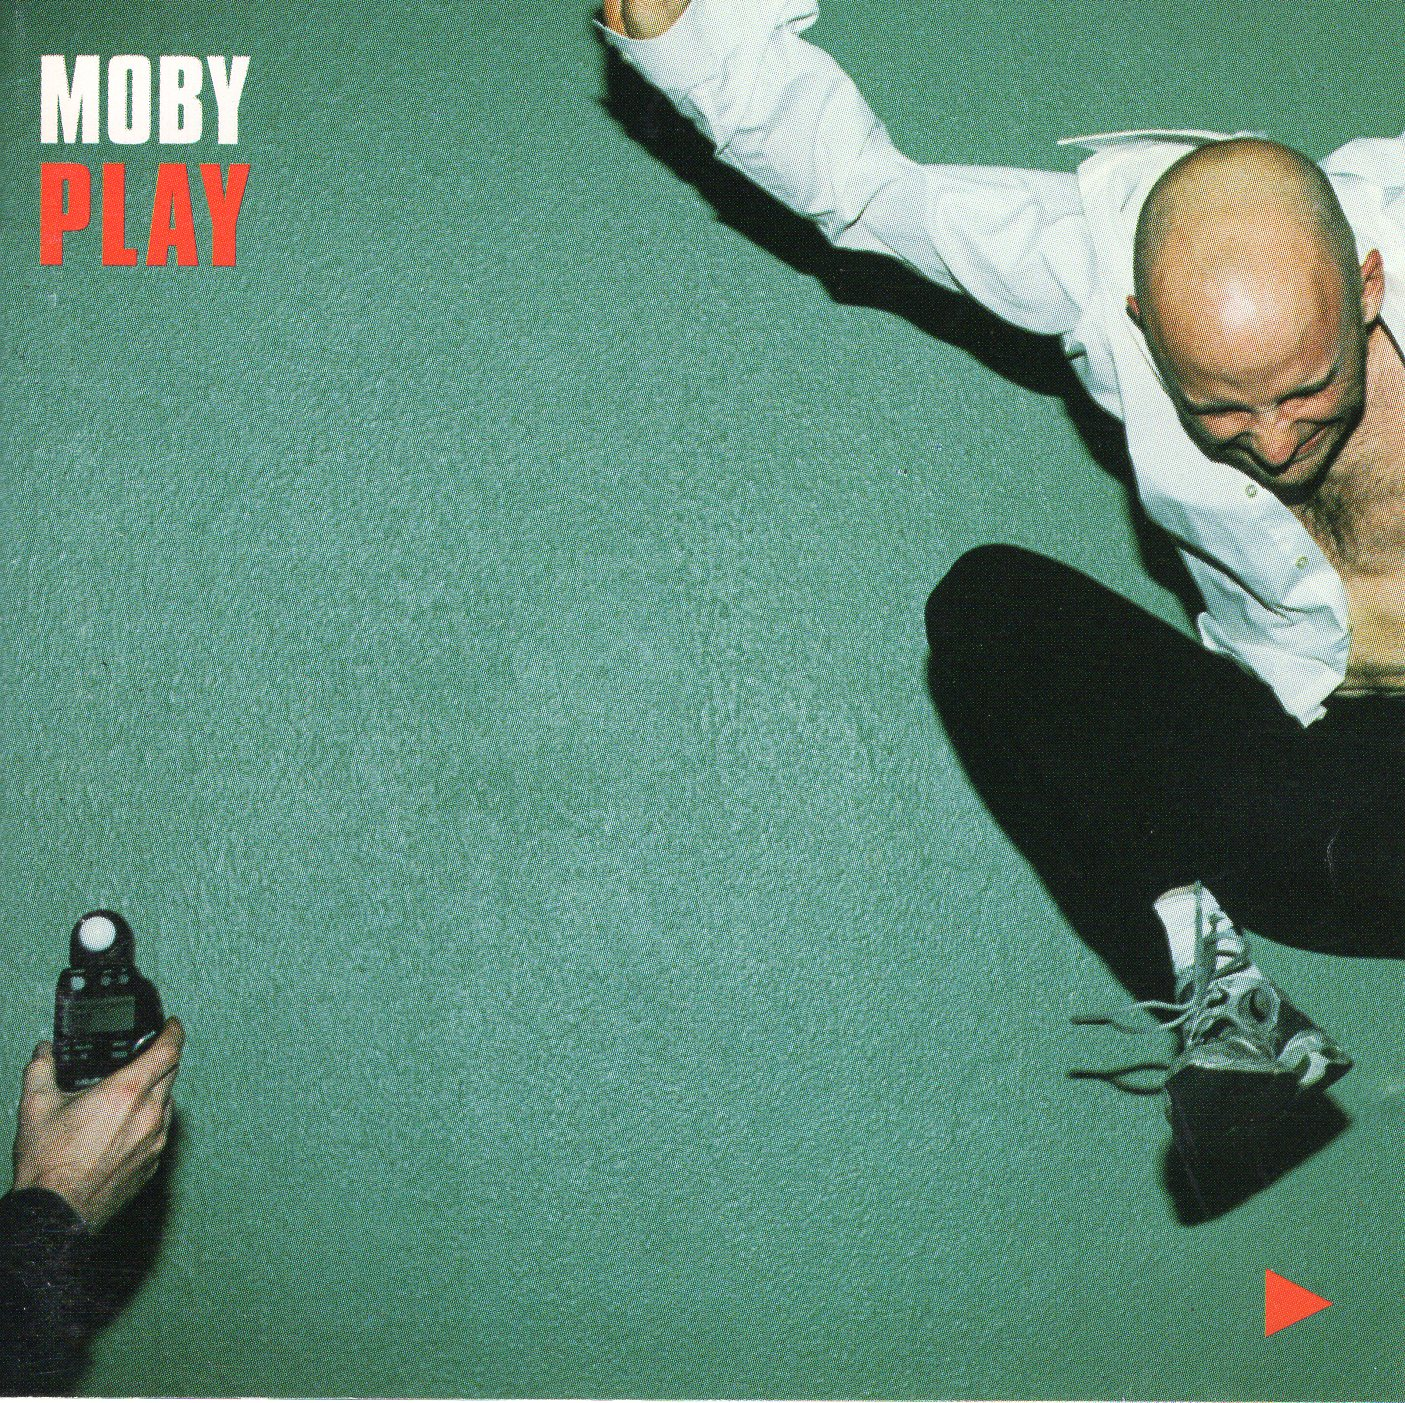 """Moby Play"" Moby"